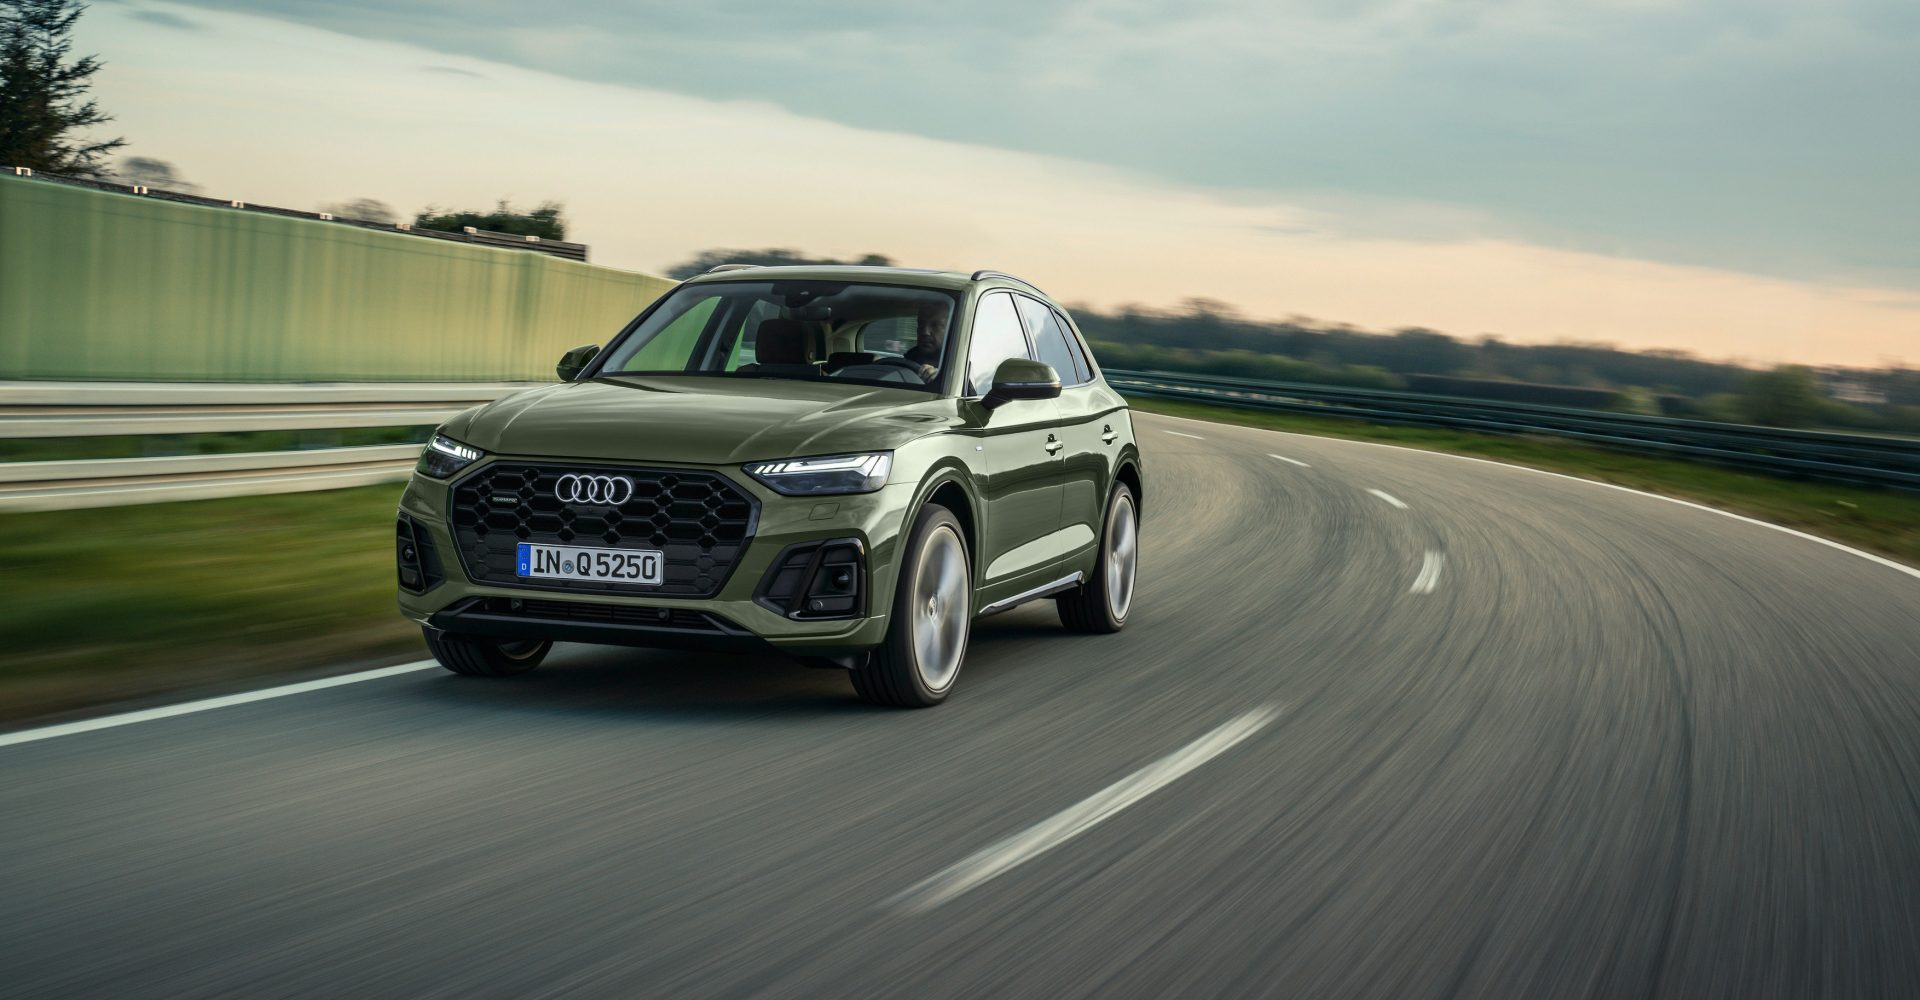 Audi revamps Q5 with new look and more tech